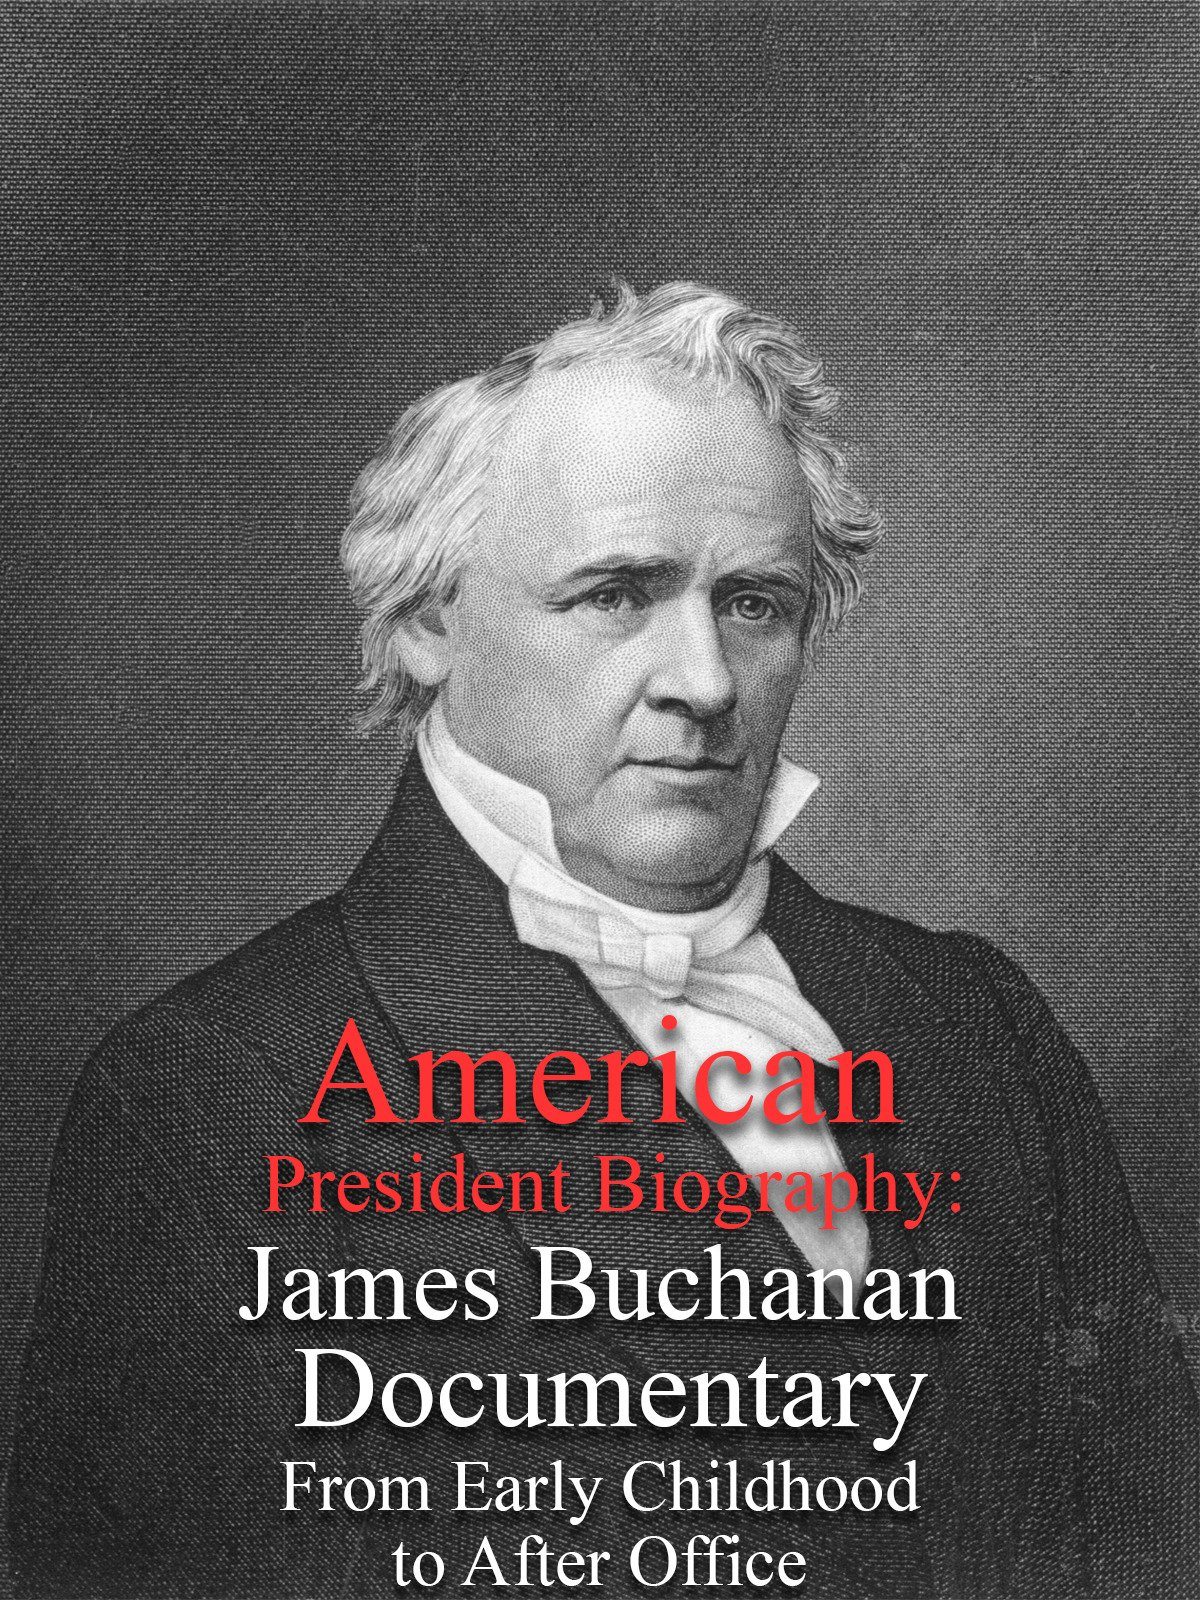 American President Biography: James Buchanan Documentary From Early Childhood to After Office